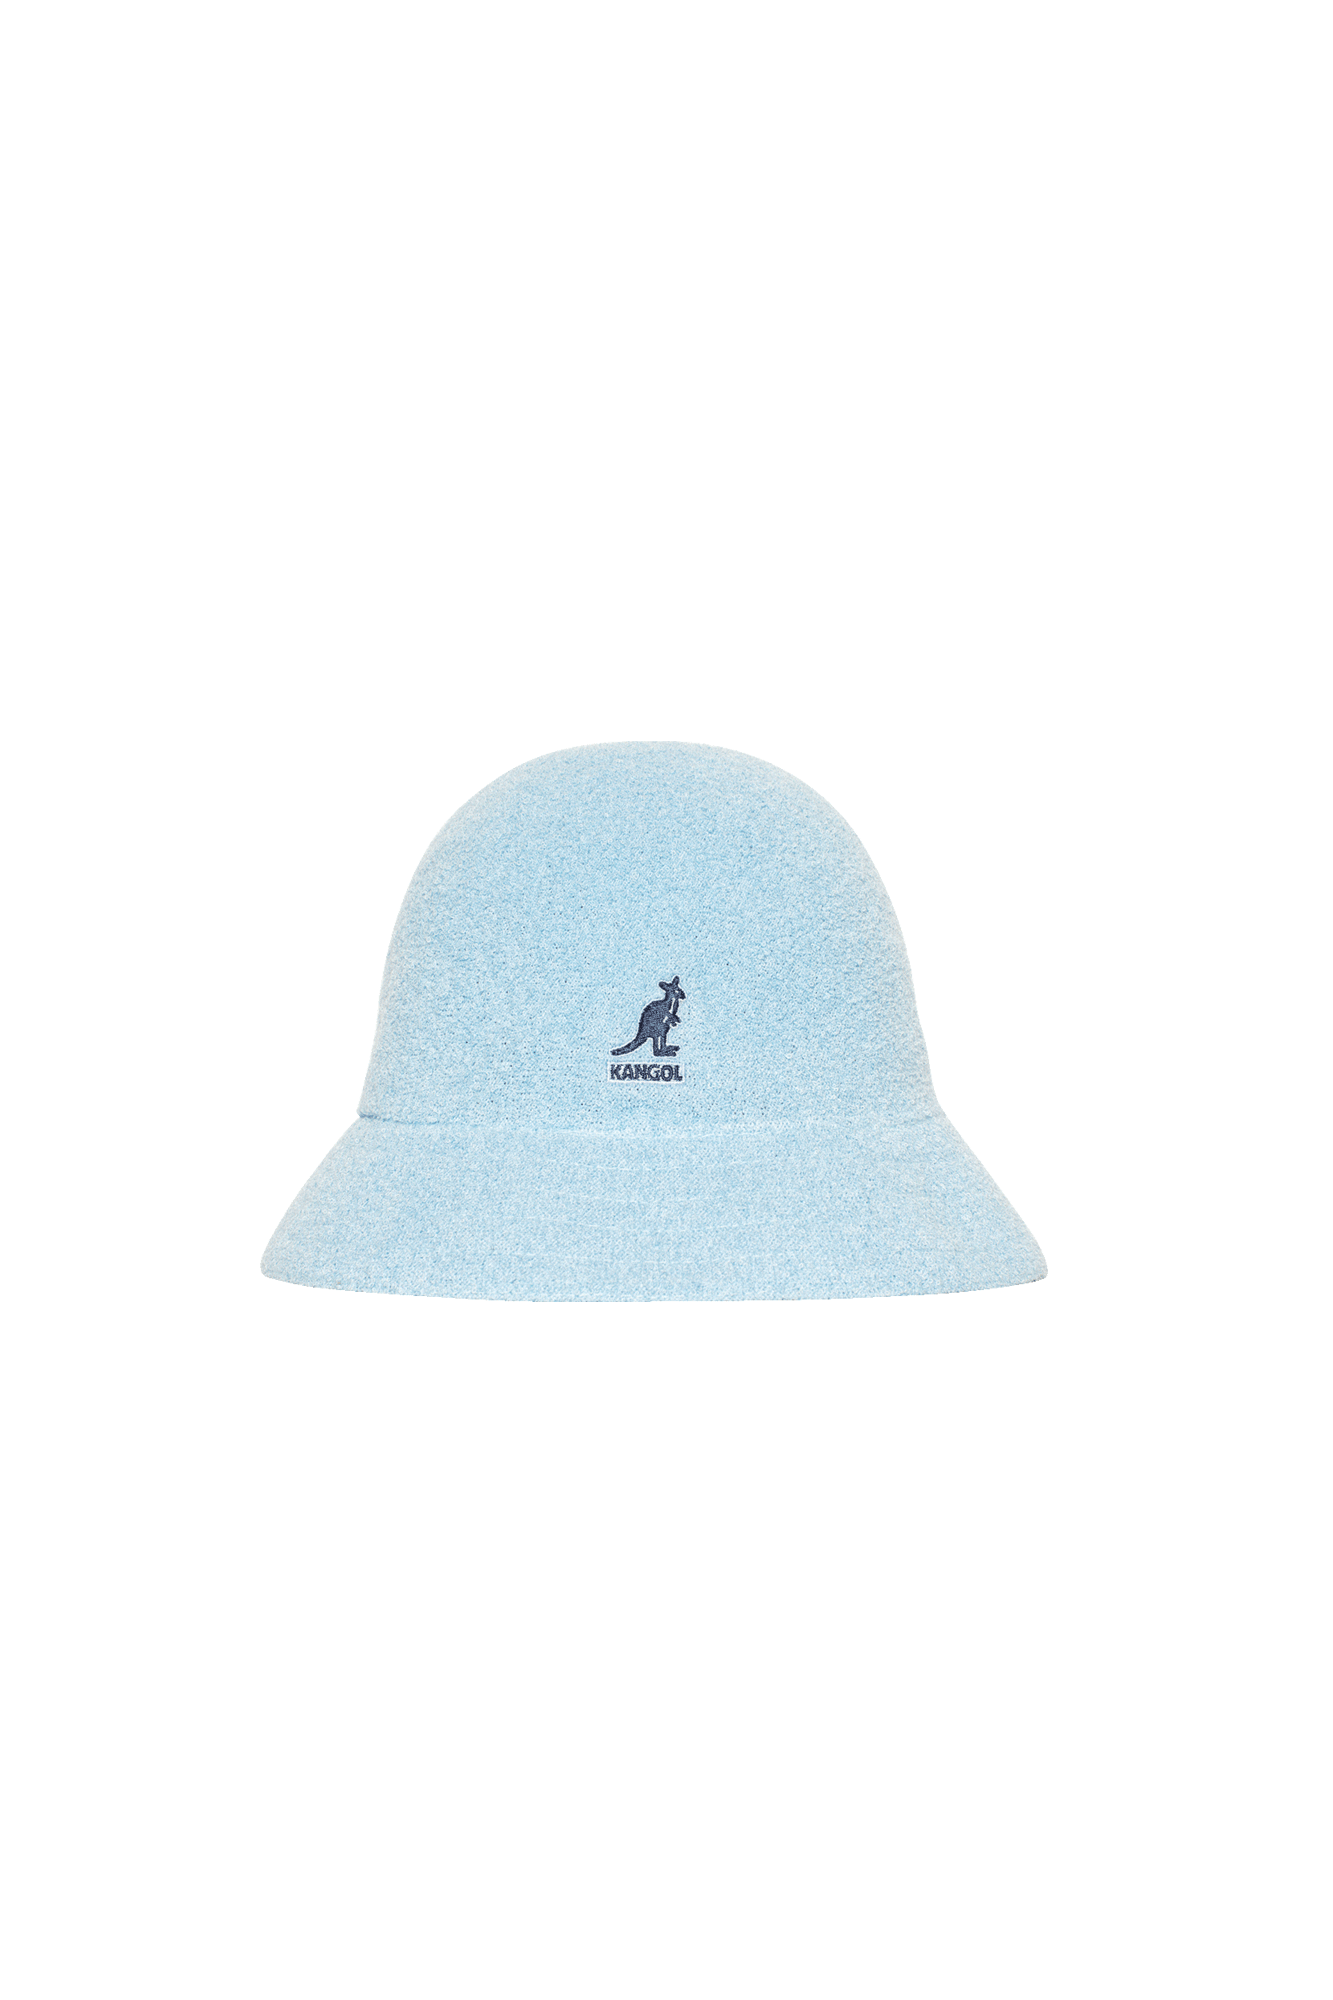 Kangol Hats Bermuda Casual Blue 0397BC#000#LTBLU#M - One Block Down